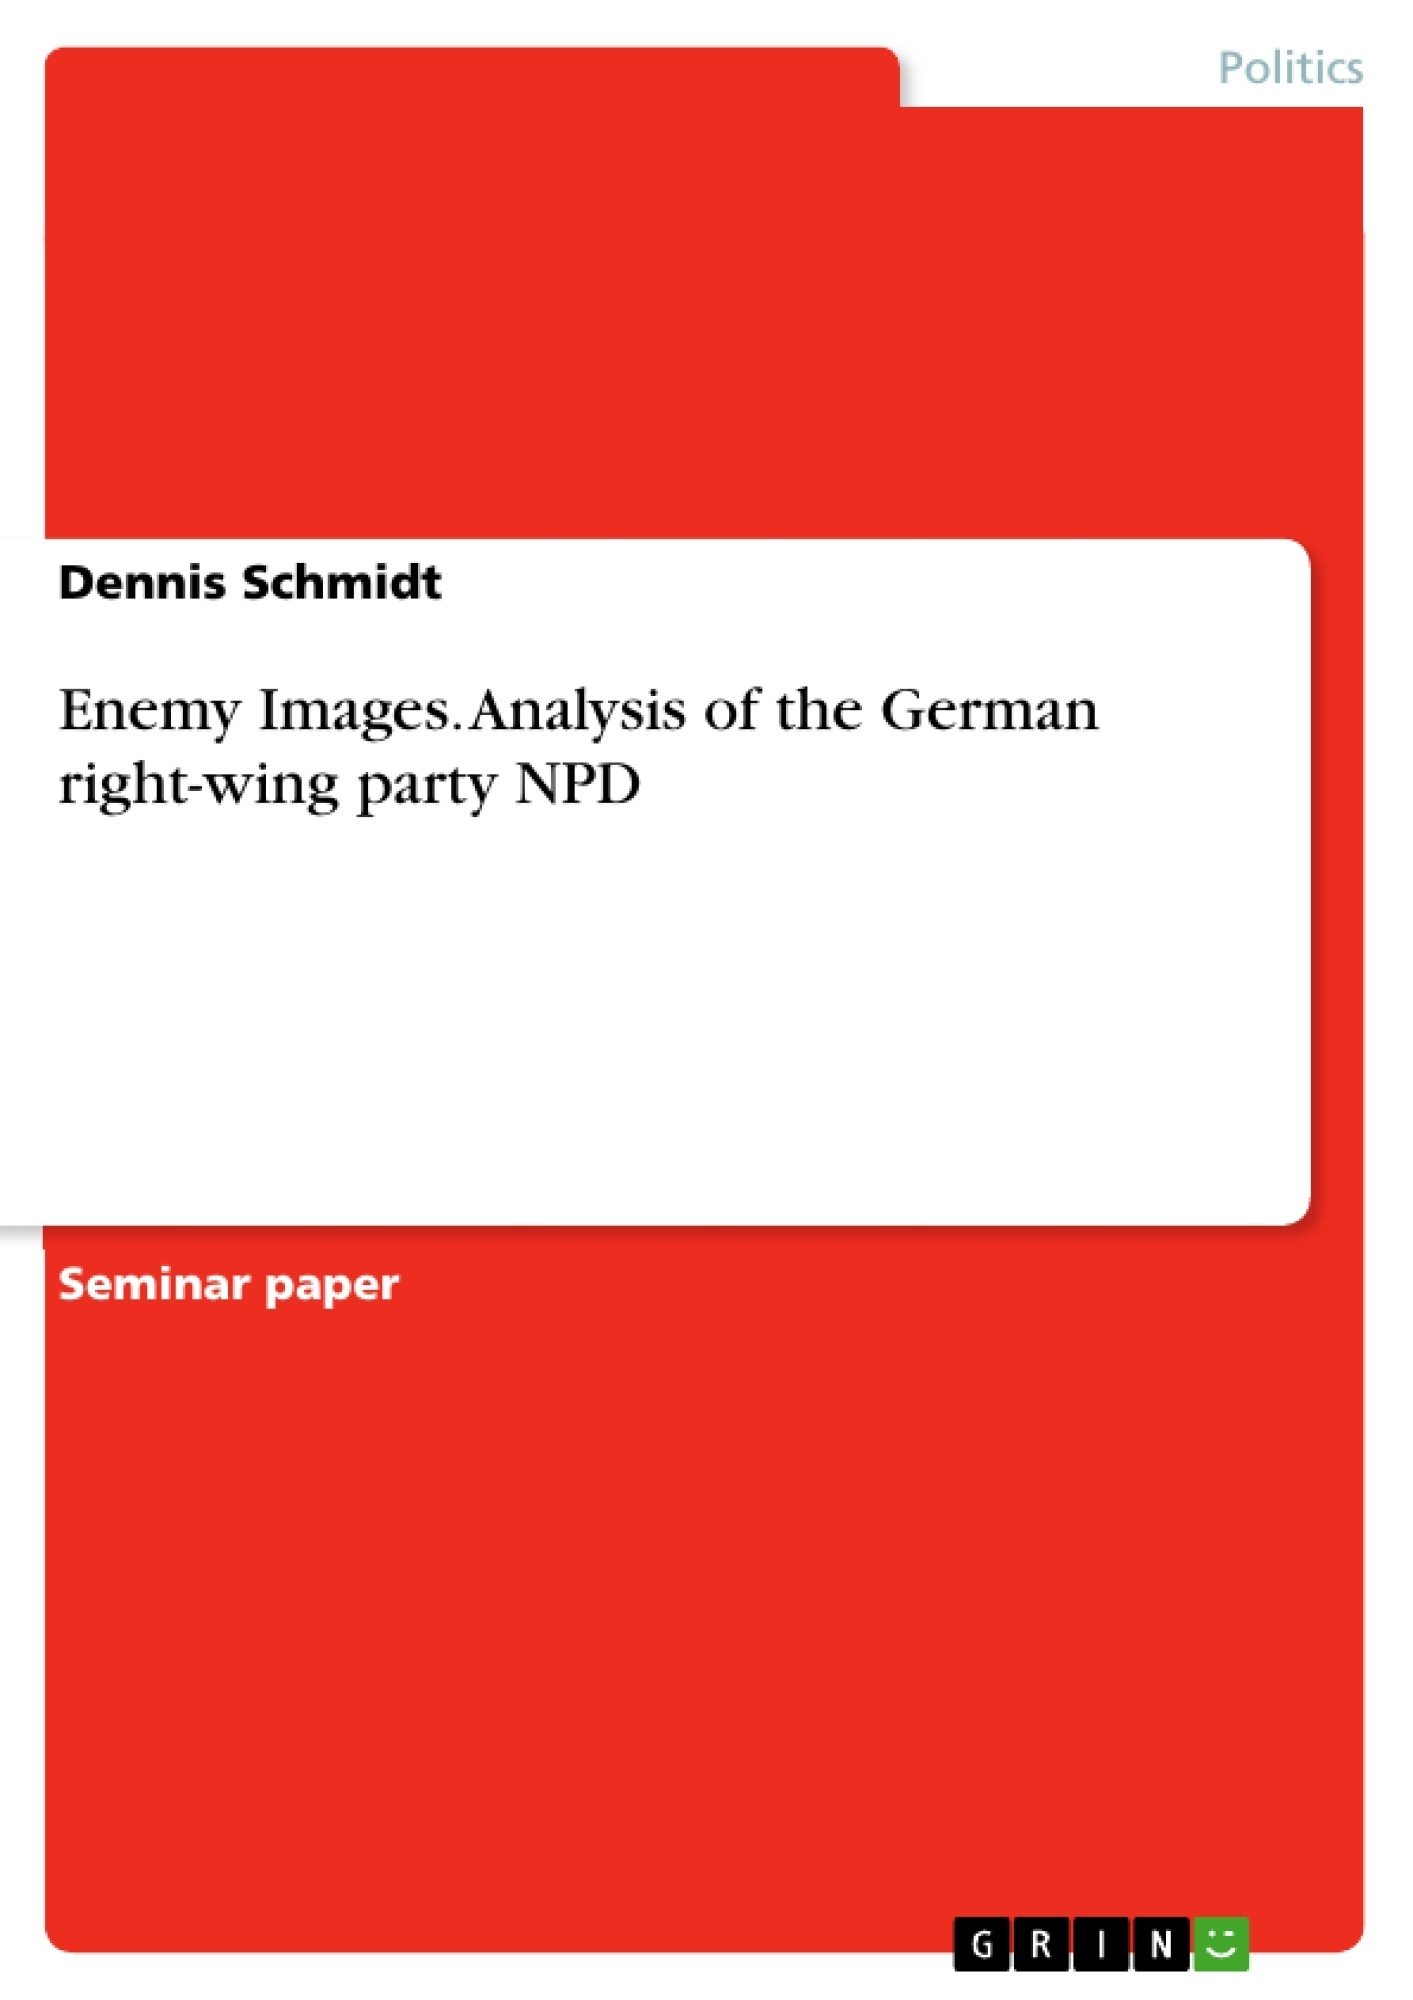 Title: Enemy Images. Analysis of the German right-wing party NPD